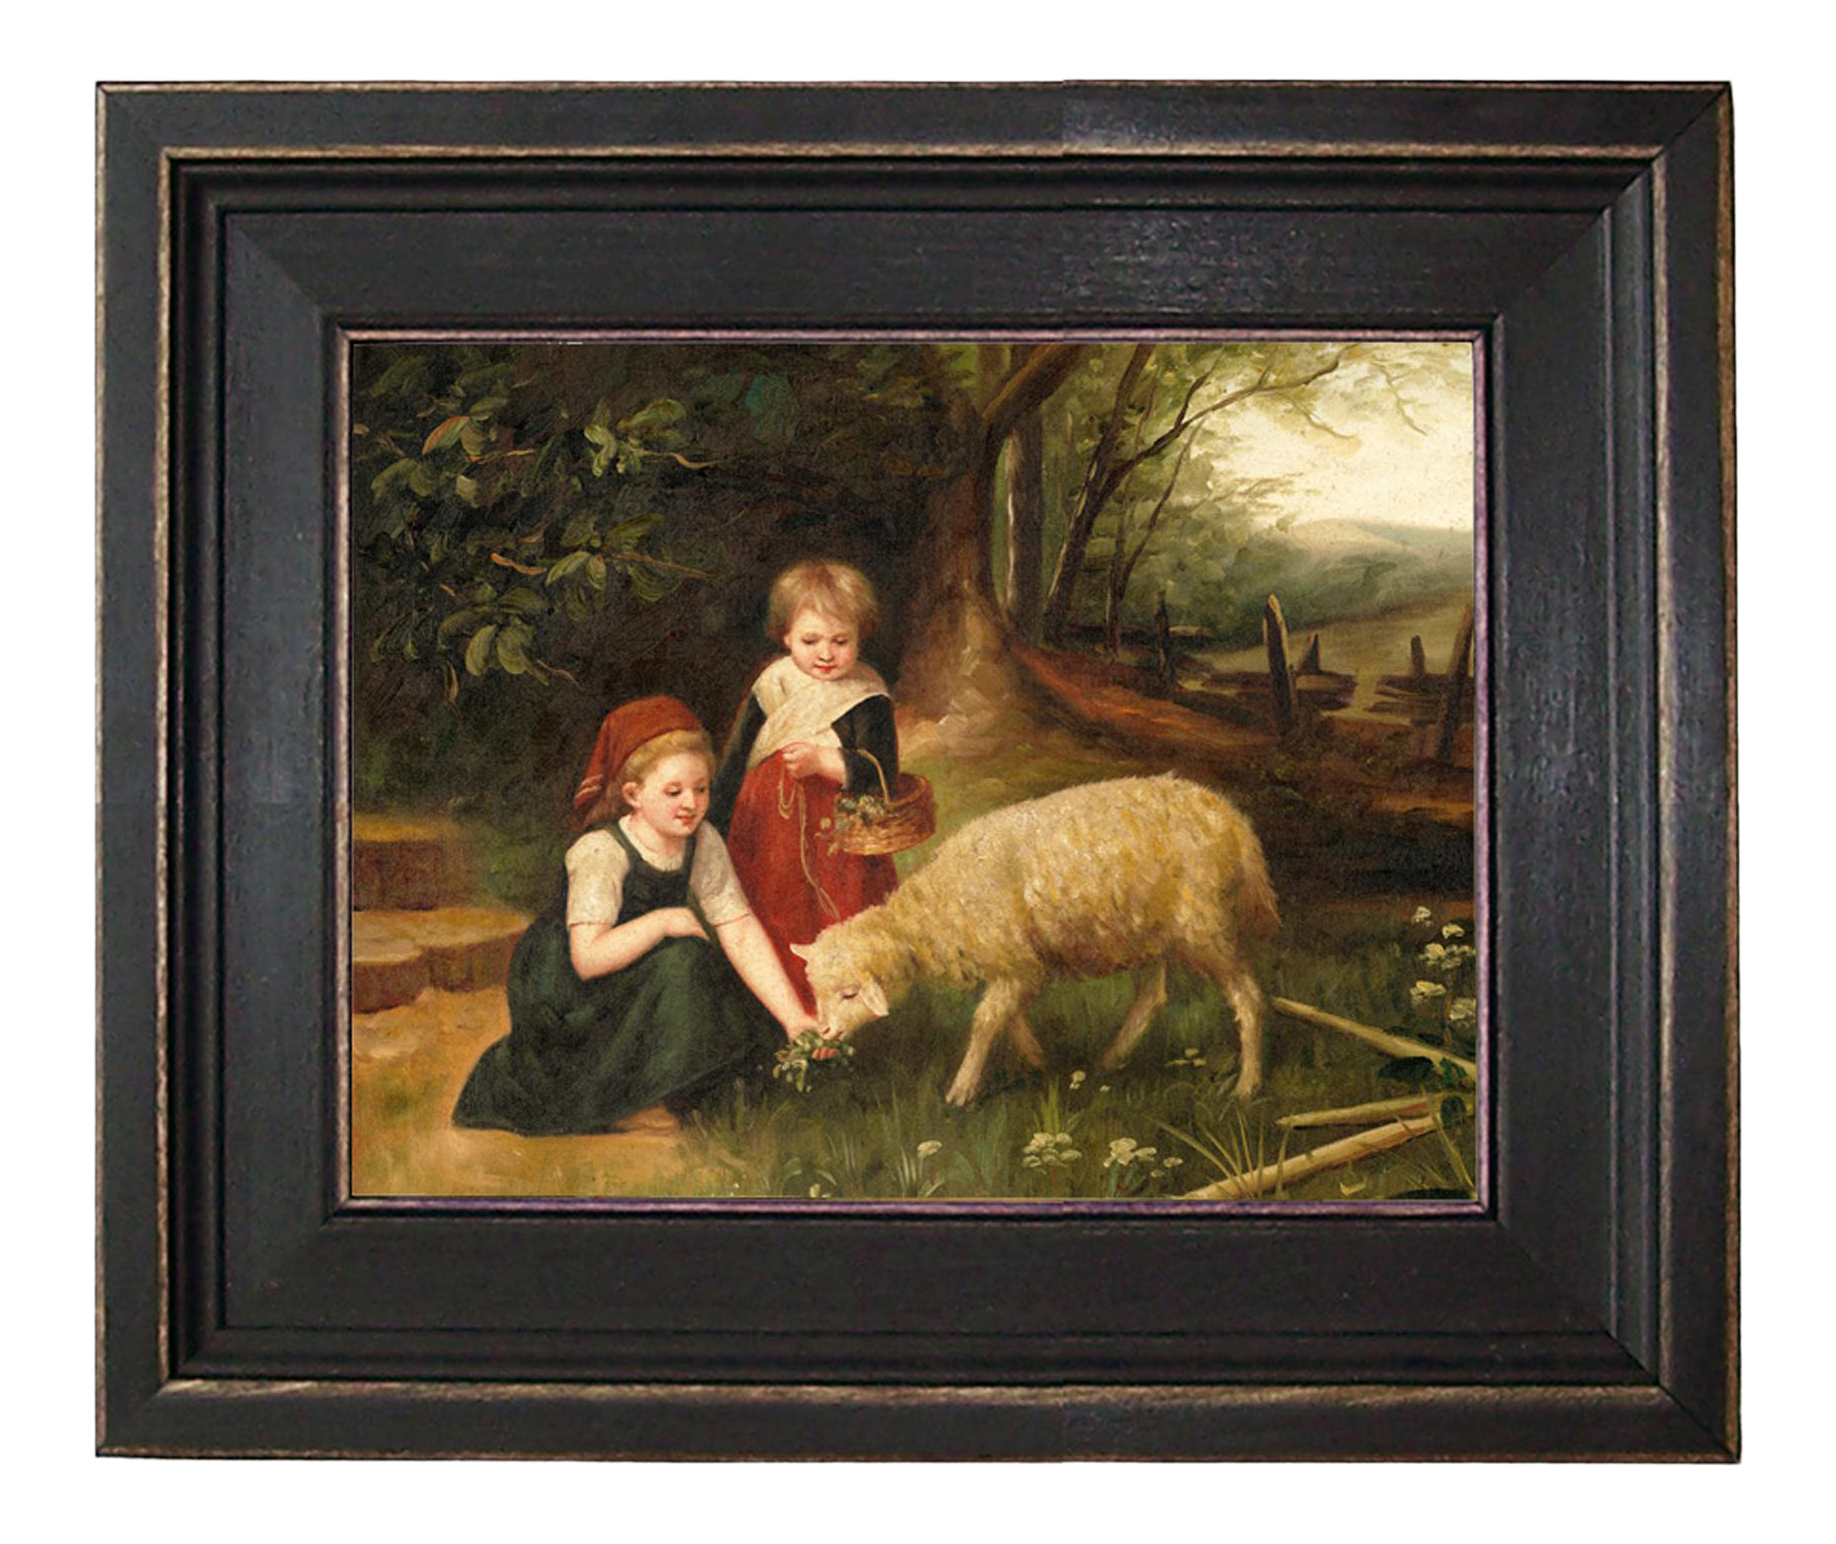 My Pet Lamb Framed Oil Painting Reproduction Print On Canvas Chairish